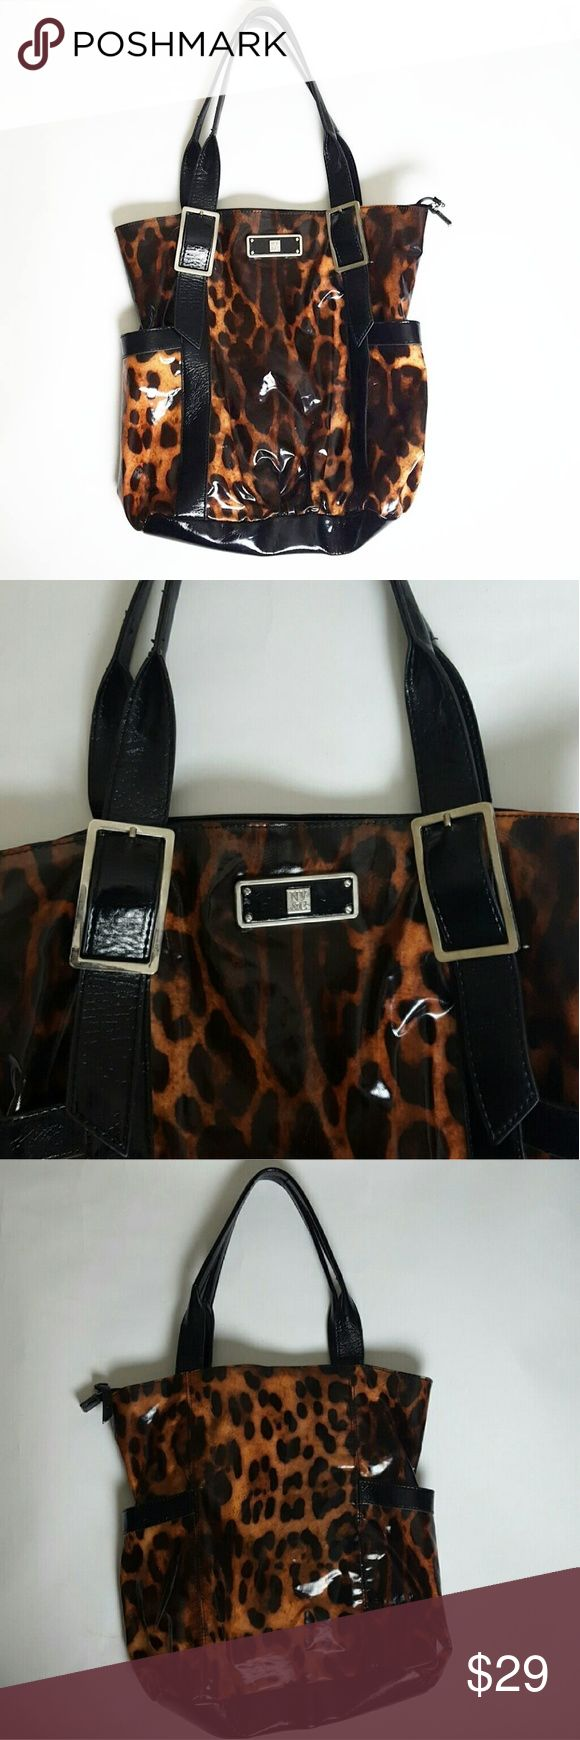 New York & Company Animal Print Bag Wet look animal print tote bag Features 1 deep pocket on each side of bag  Inside features 1 zipper pocket Interior shows minor signs of wear, in great condition!. Any questions? Feel free to ask. Happy Poshing! New York & Company Bags